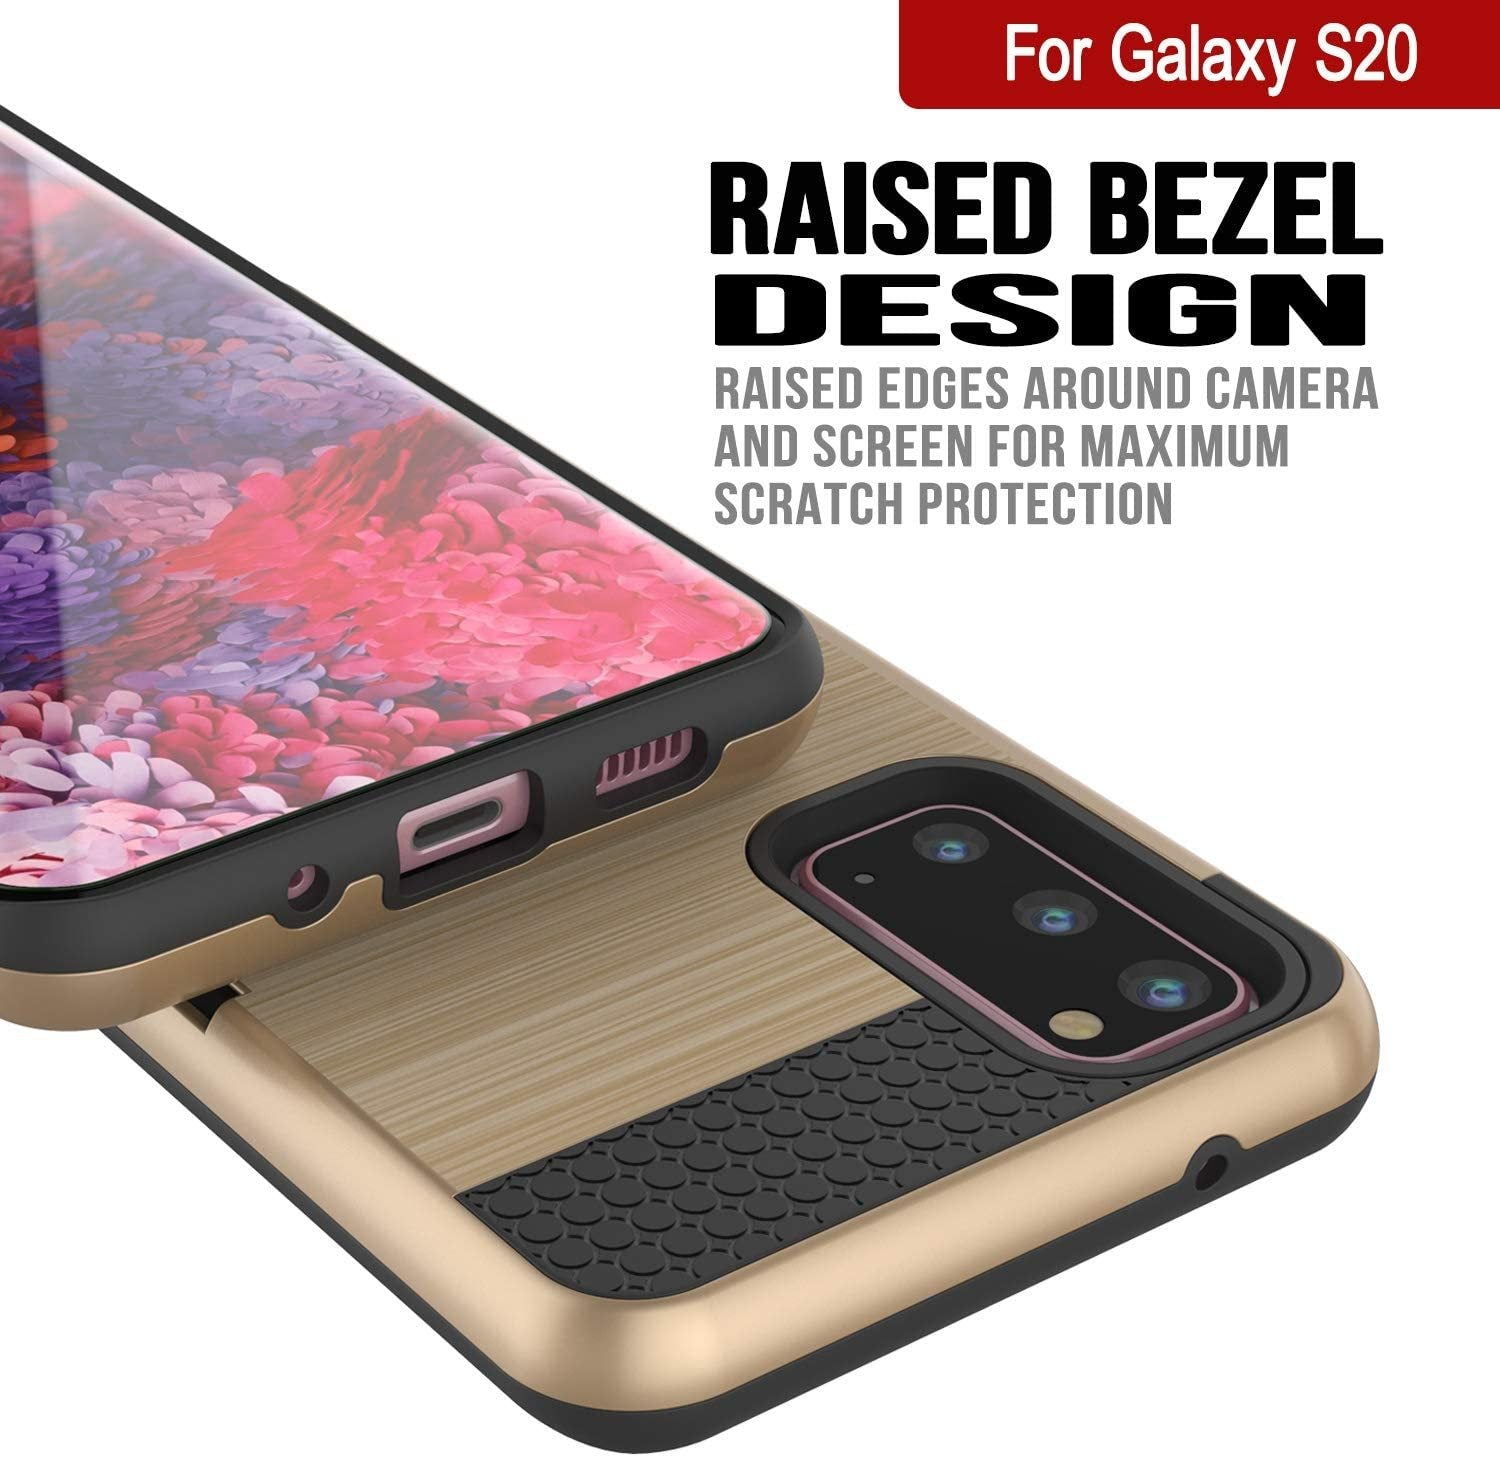 Galaxy S20 Case, PUNKcase [SLOT Series] [Slim Fit] Dual-Layer Armor Cover w/Integrated Anti-Shock System, Credit Card Slot [Gold]